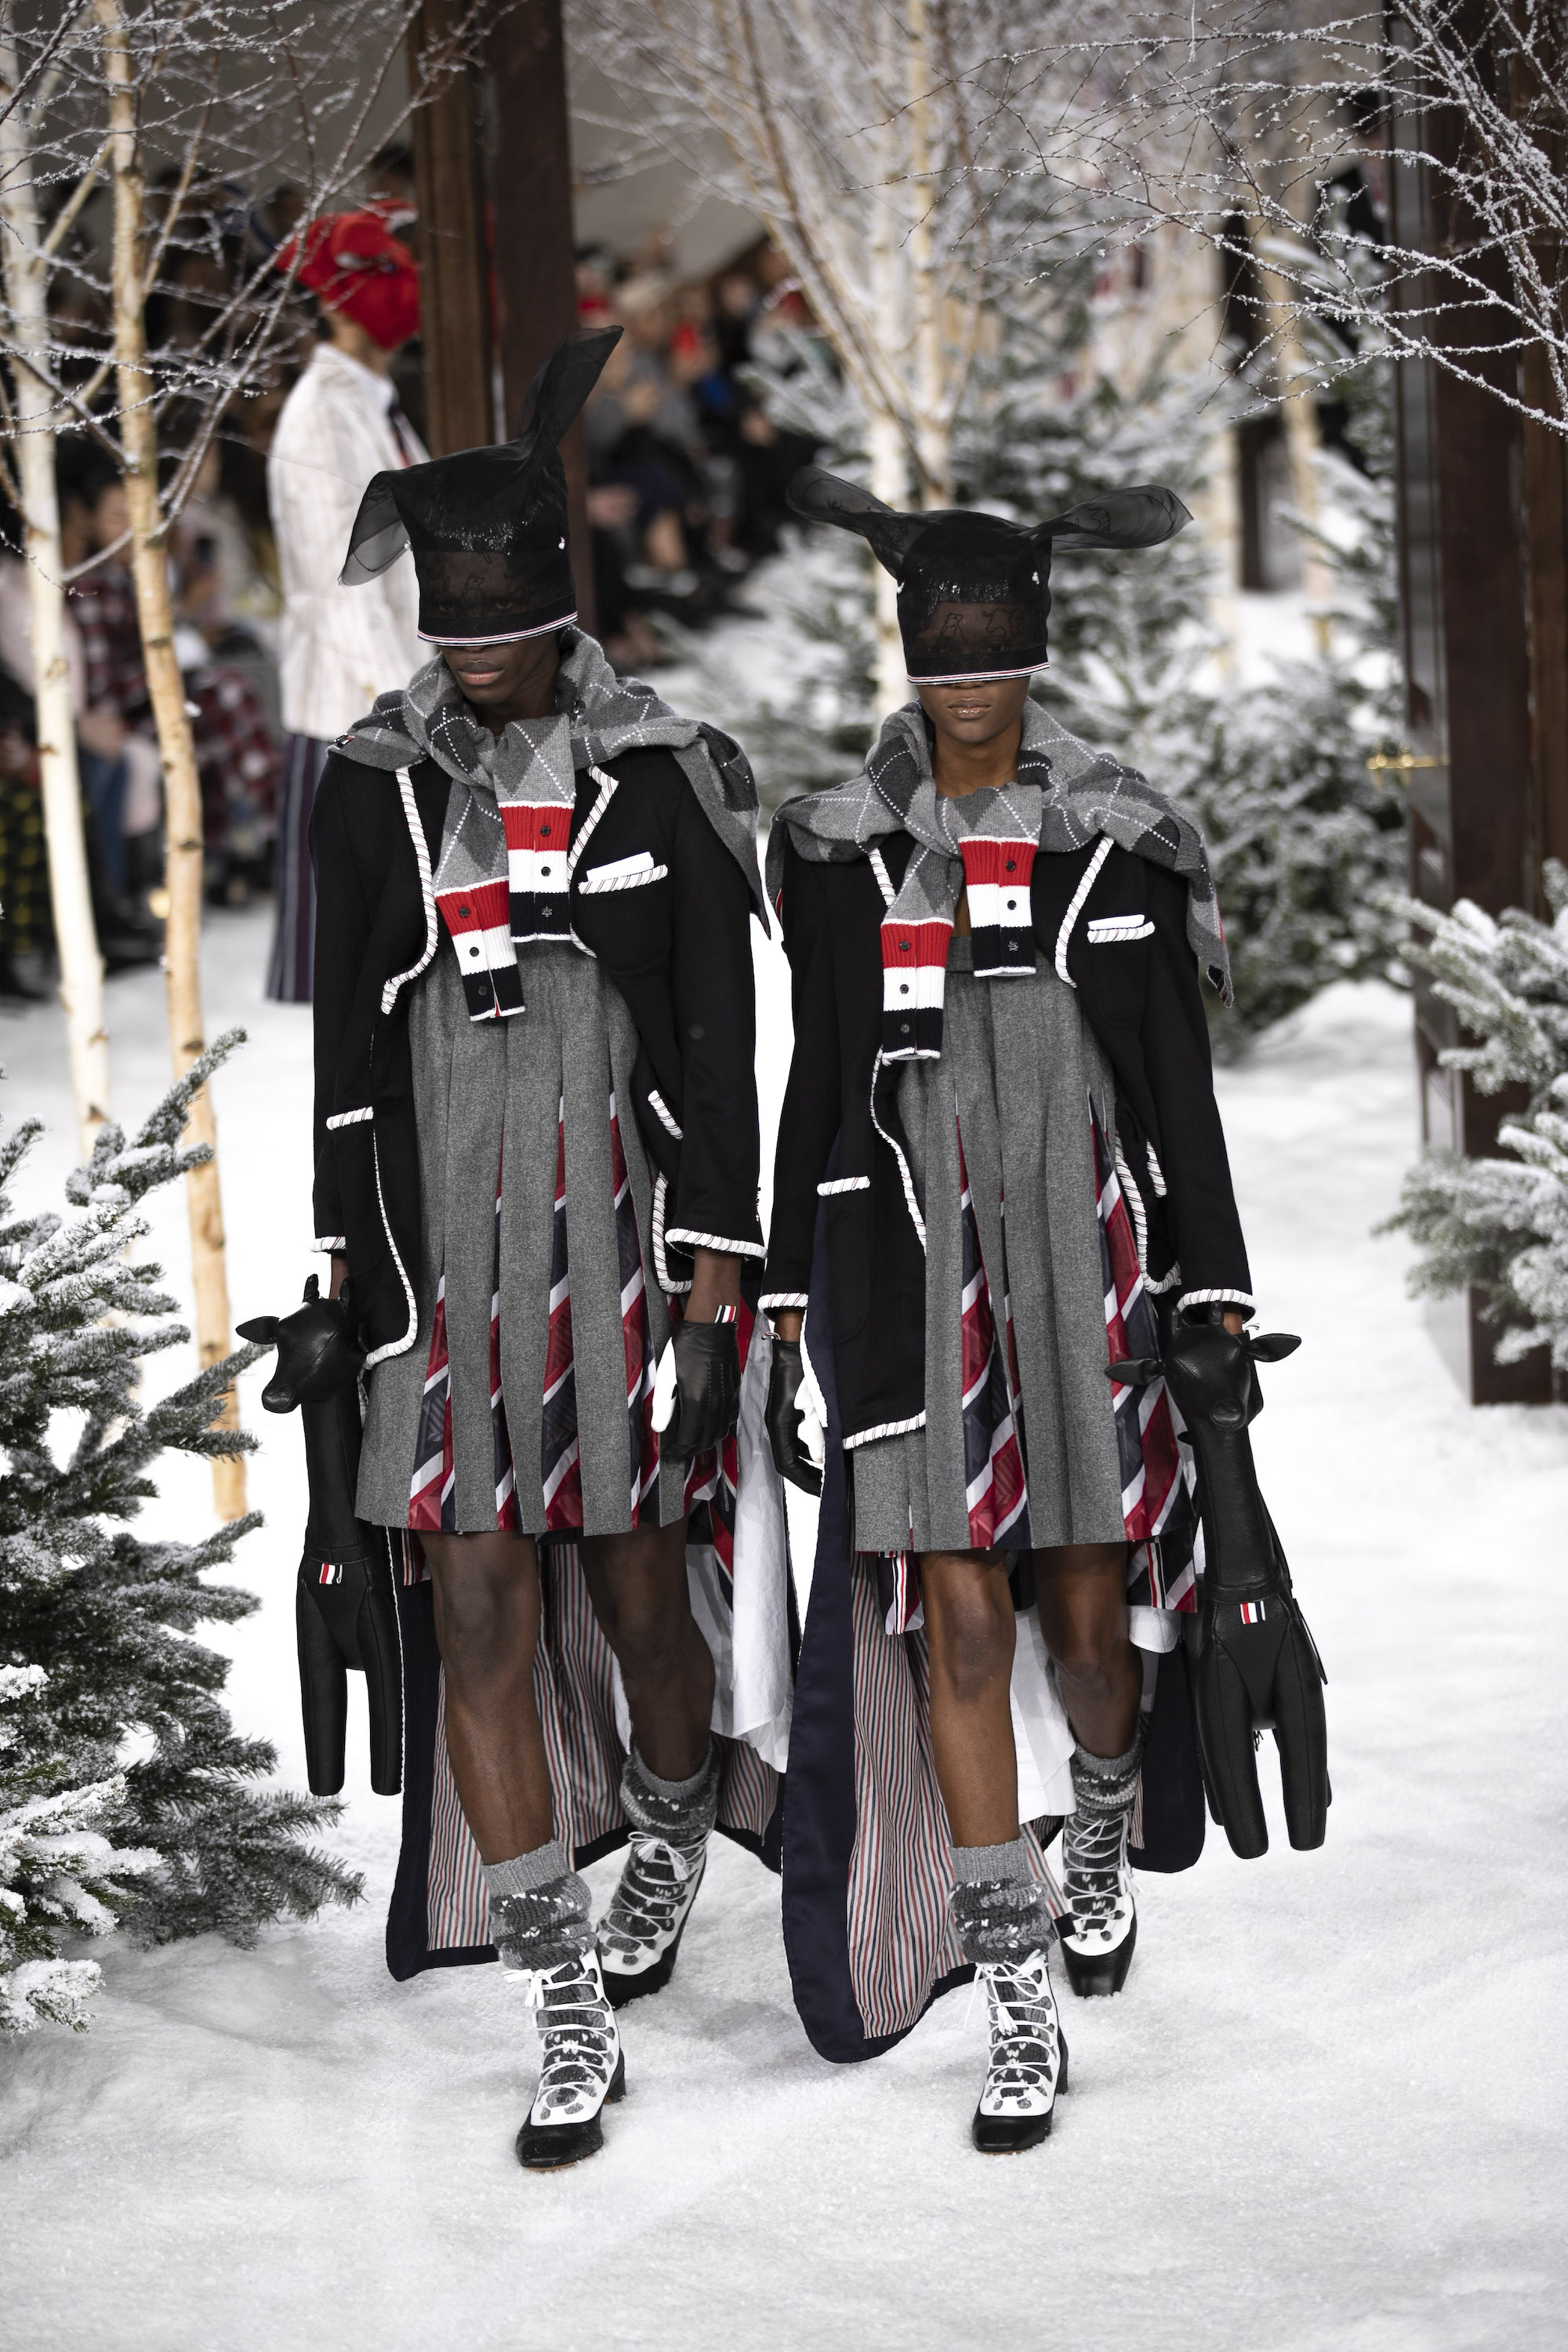 Thom Browne AW20 PFW striped dress and matching bags